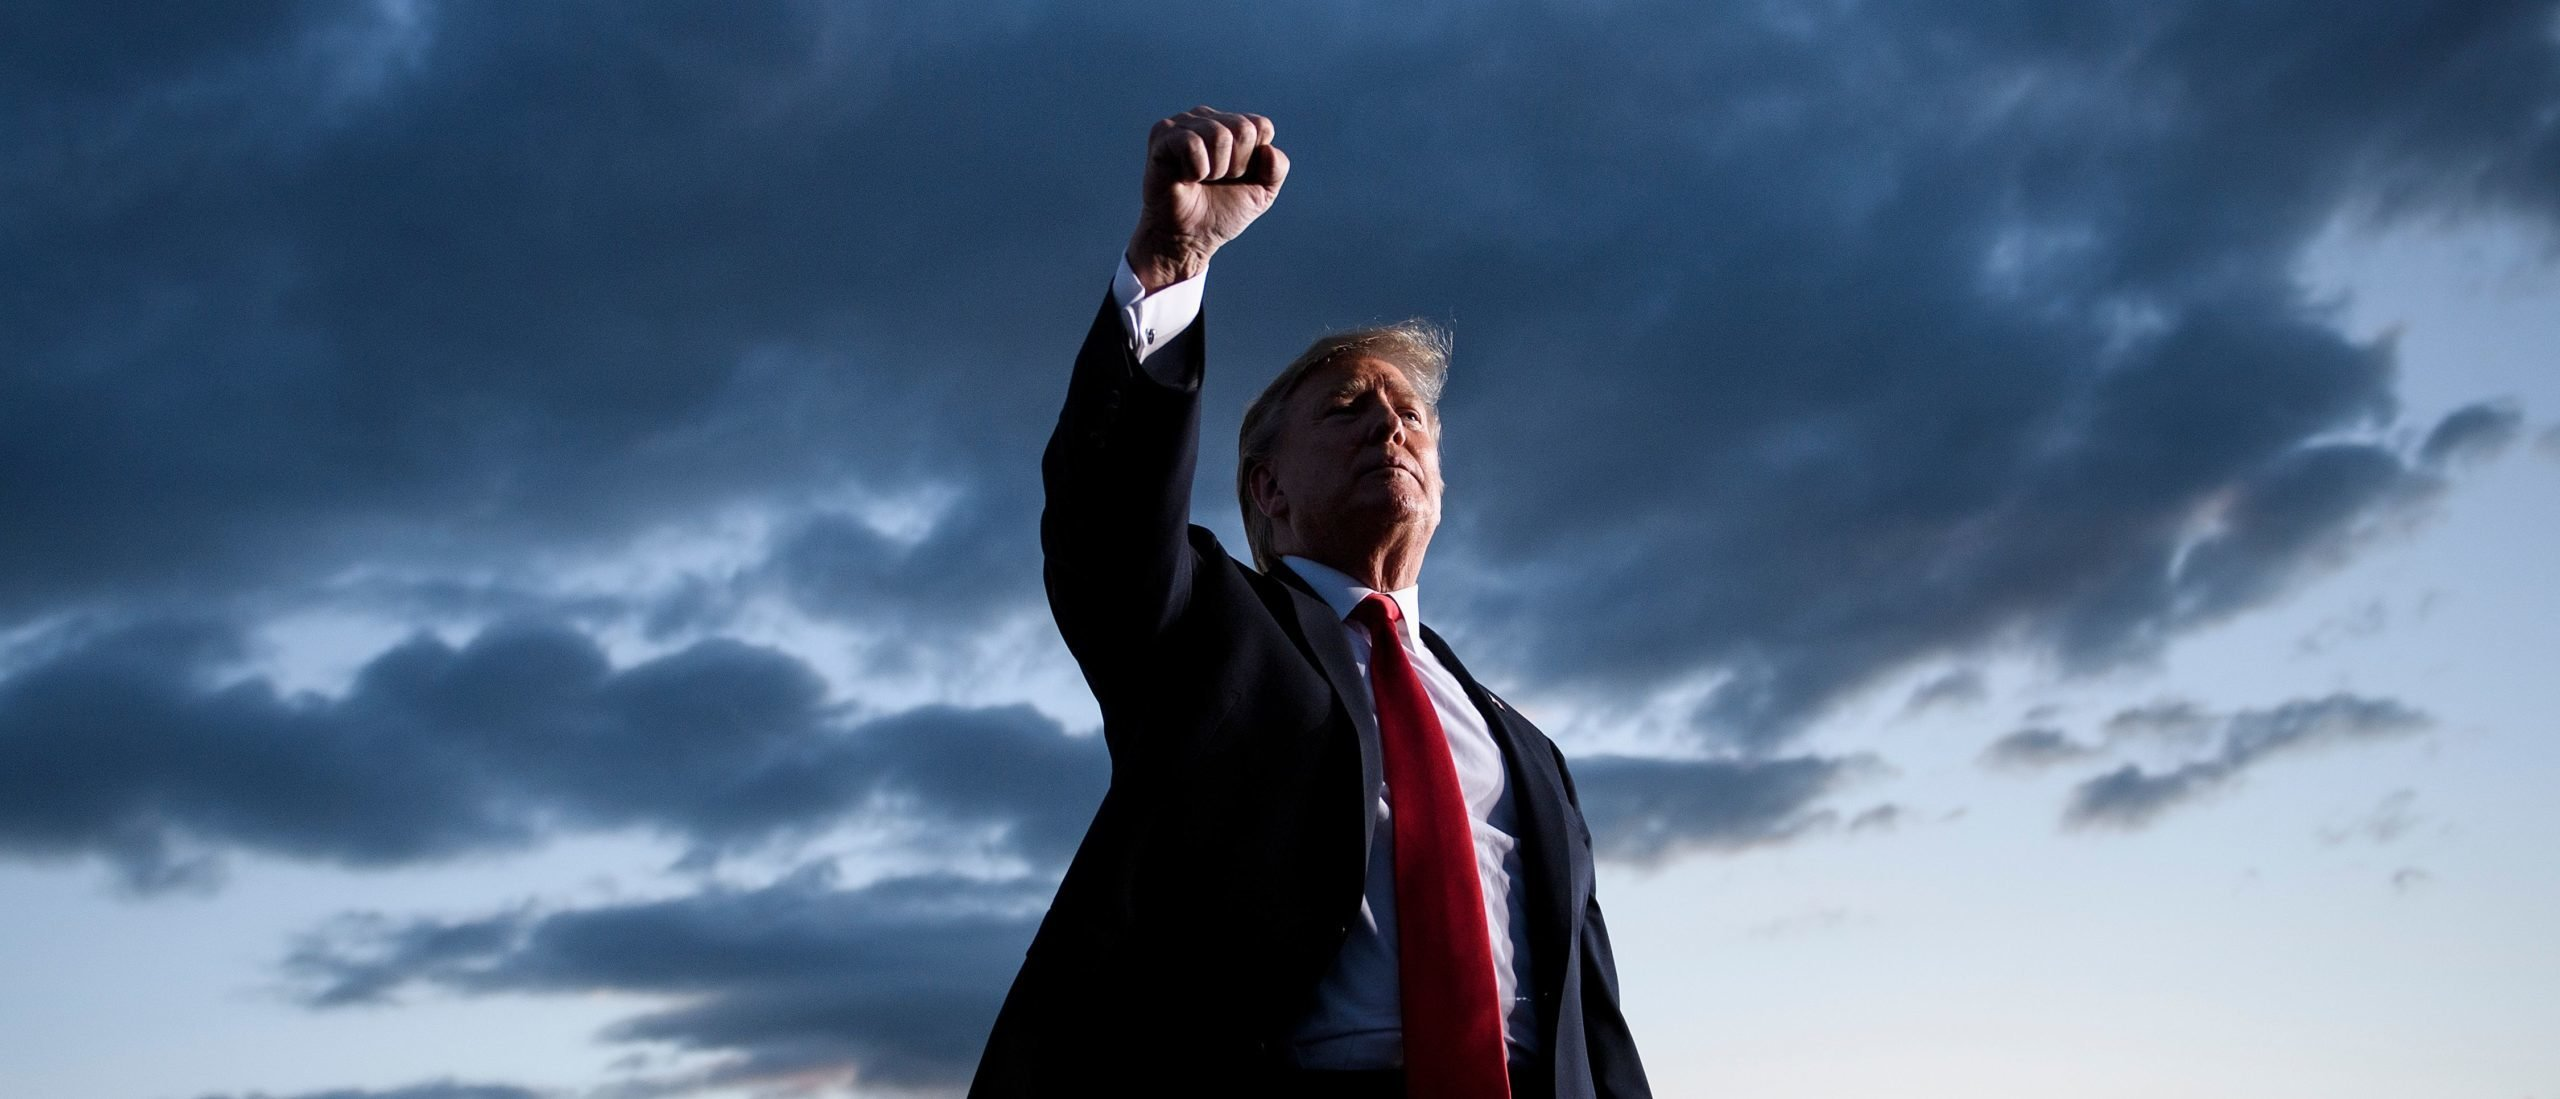 TOPSHOT - US President Donald Trump holds up his fist as he leaves after speaking during a Make America Great Again rally at Williamsport Regional Airport May 20, 2019, in Montoursville, Pennsylvania. (Photo by Brendan Smialowski / AFP) (Photo by BRENDAN SMIALOWSKI/AFP via Getty Images)